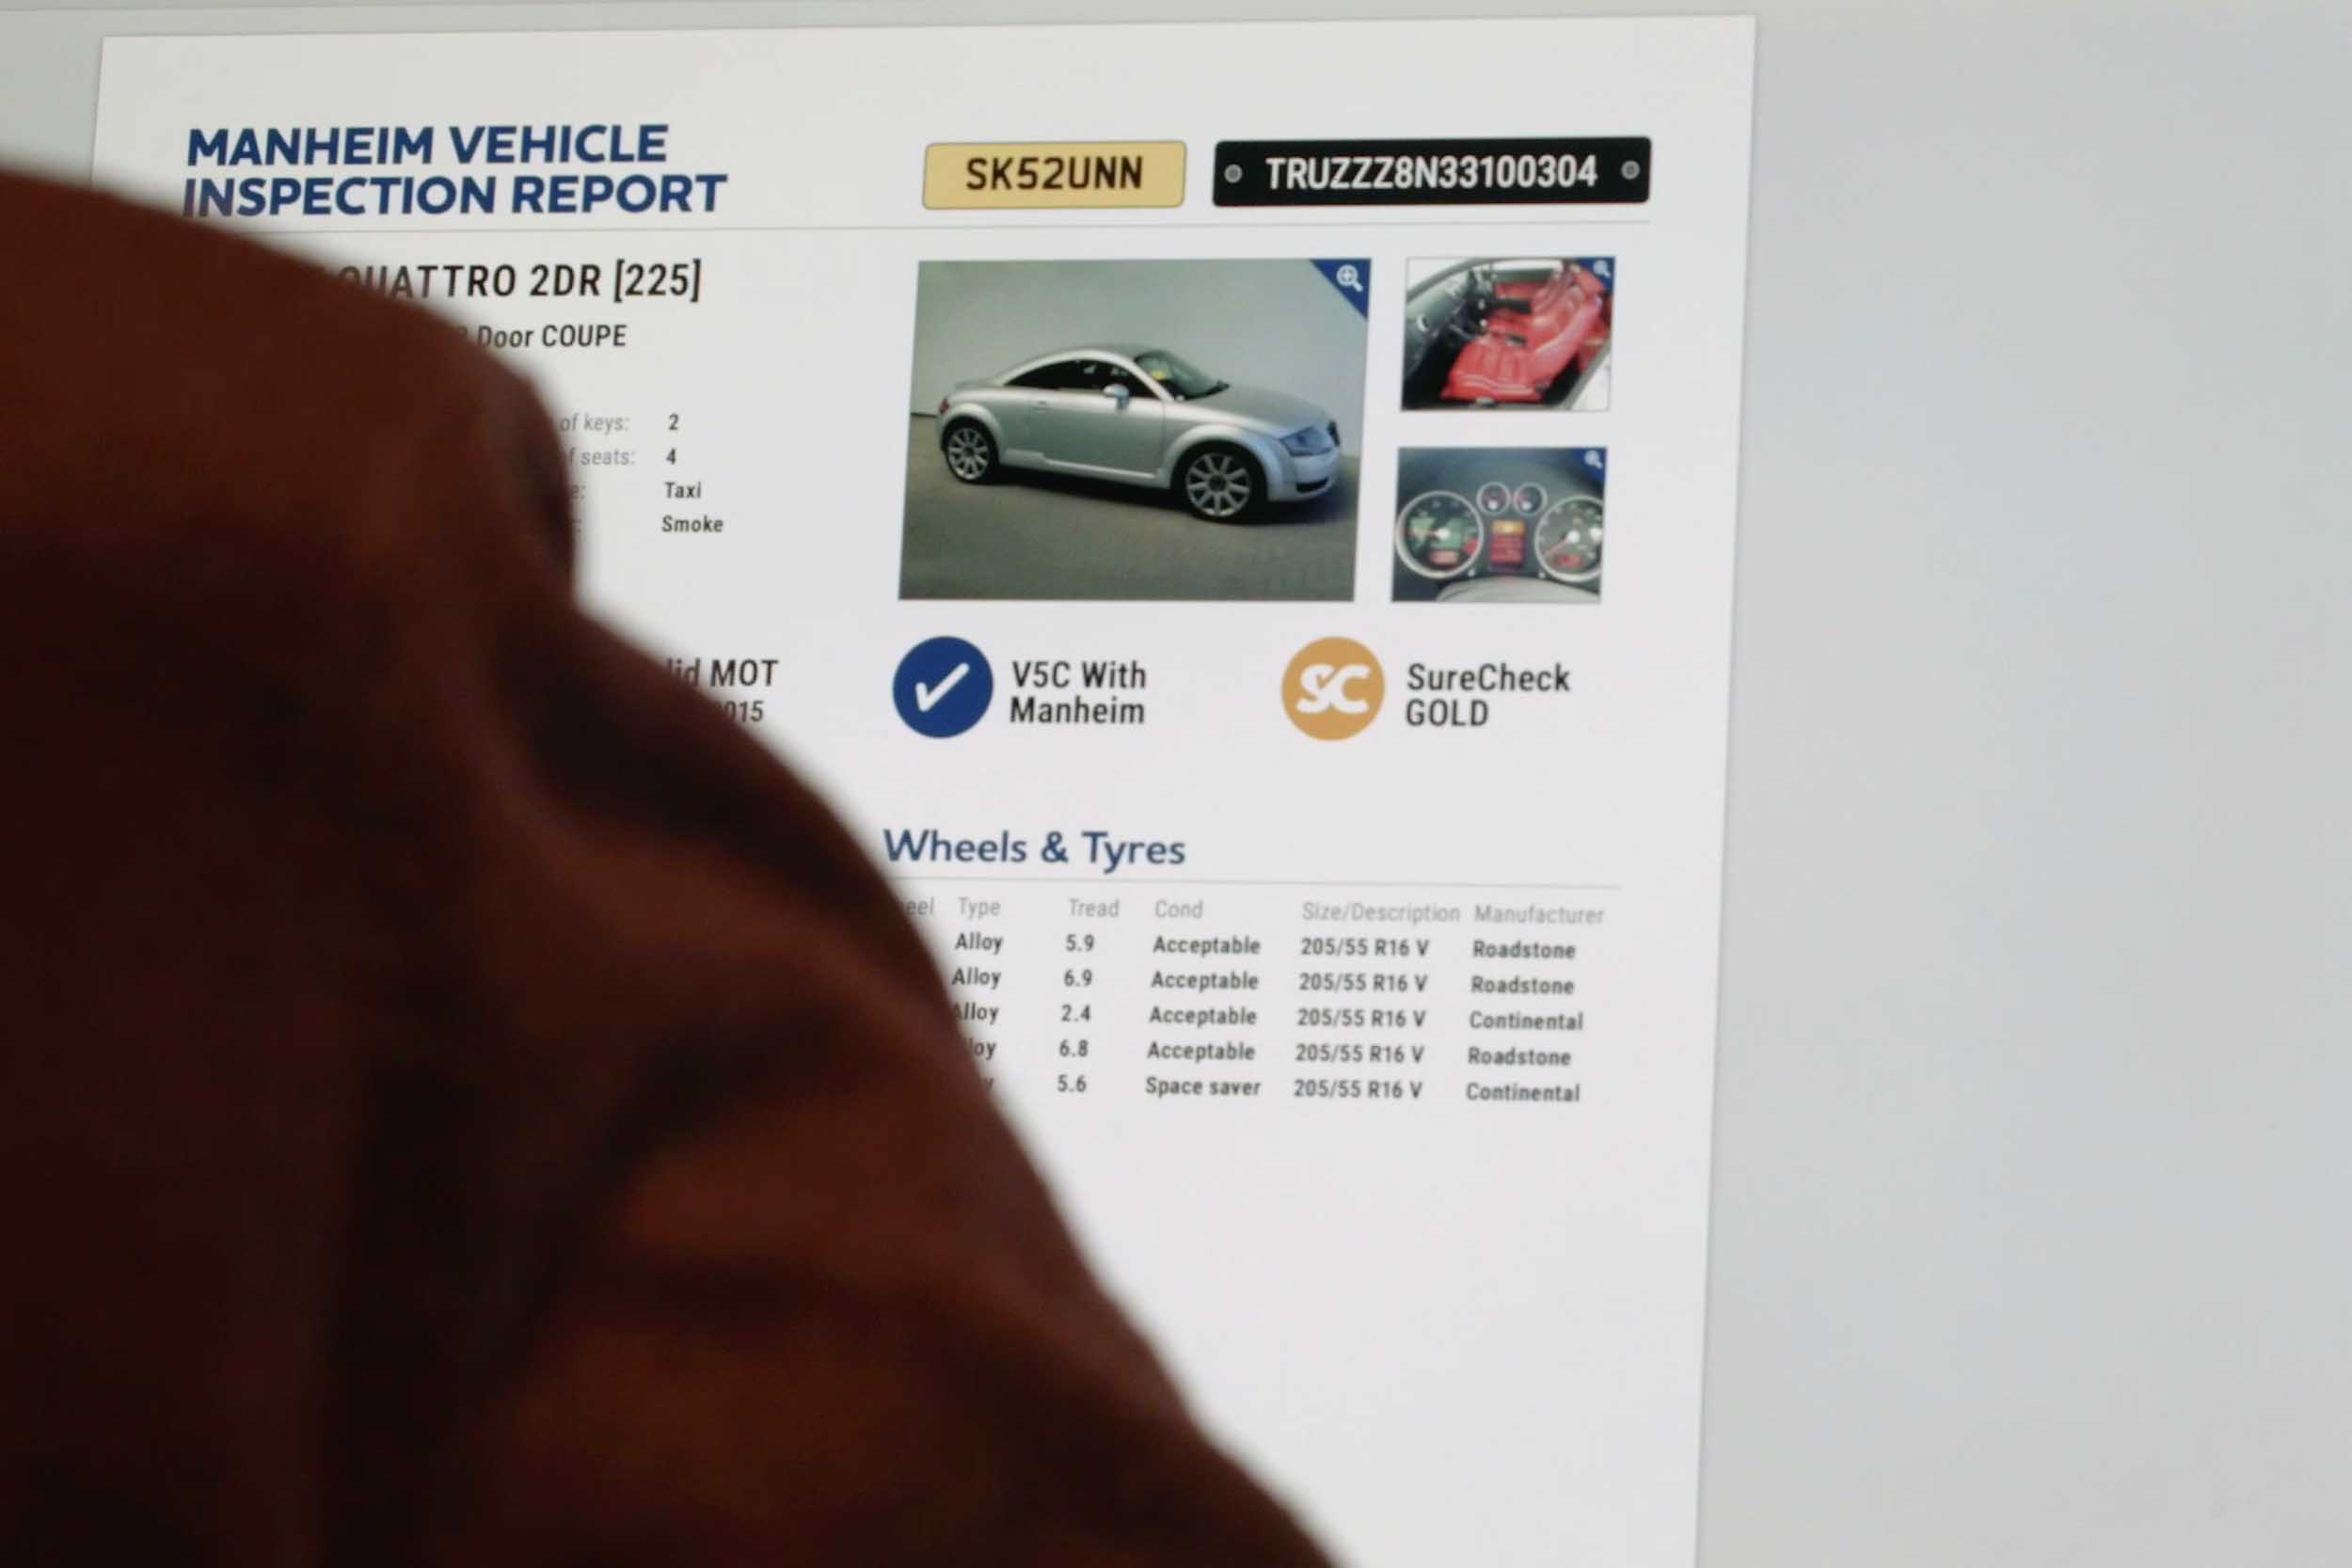 Vehicle inspection reports at Manheim